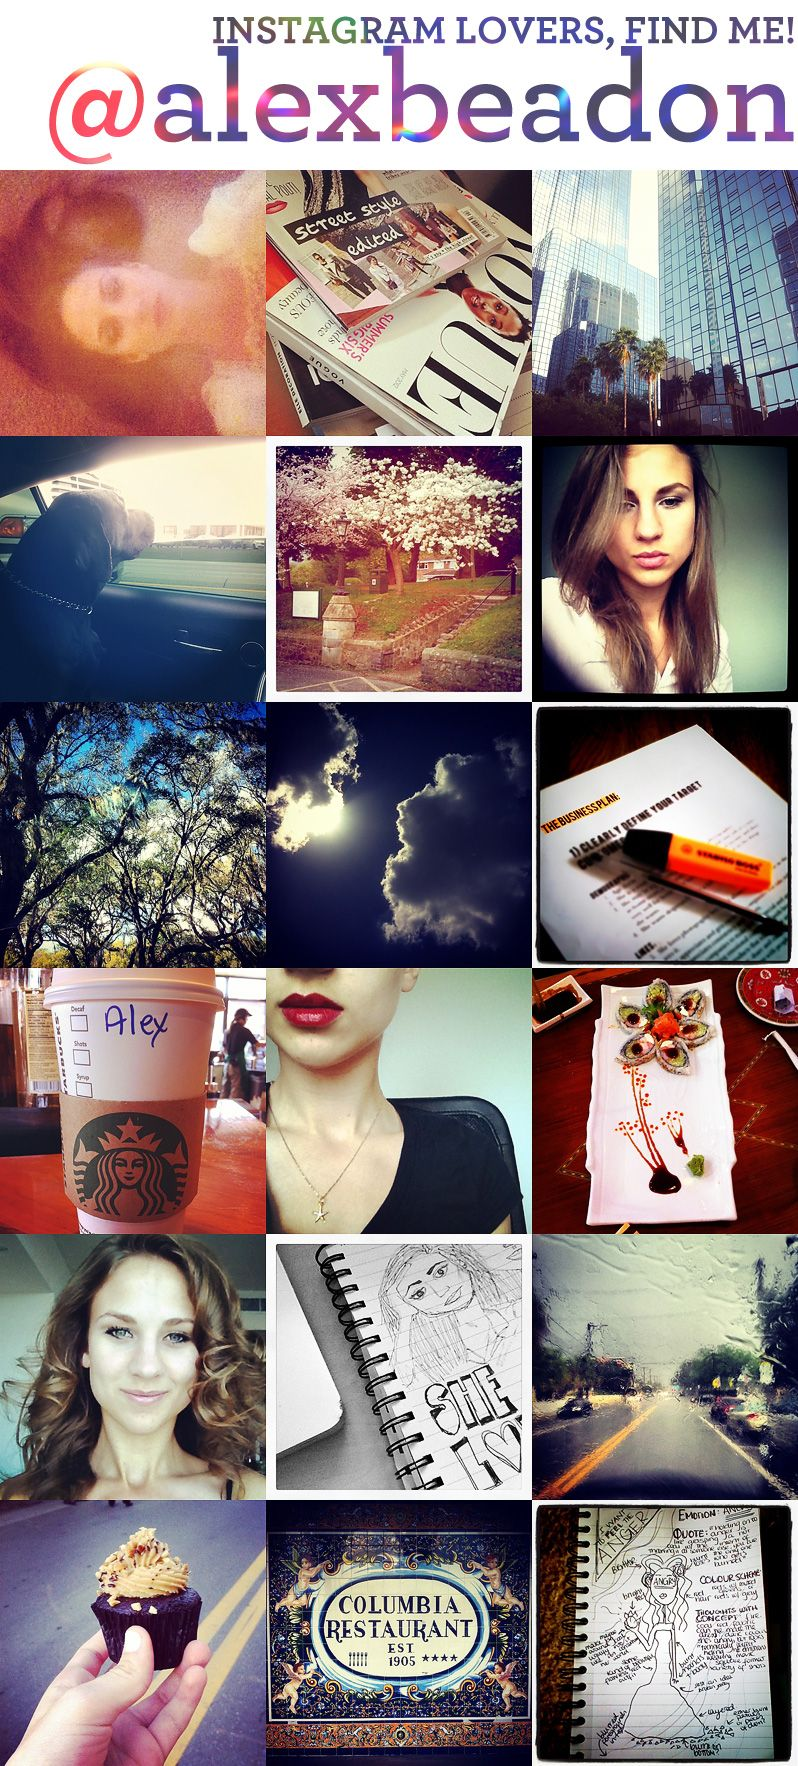 You and Me on Instagram - love the collage feel